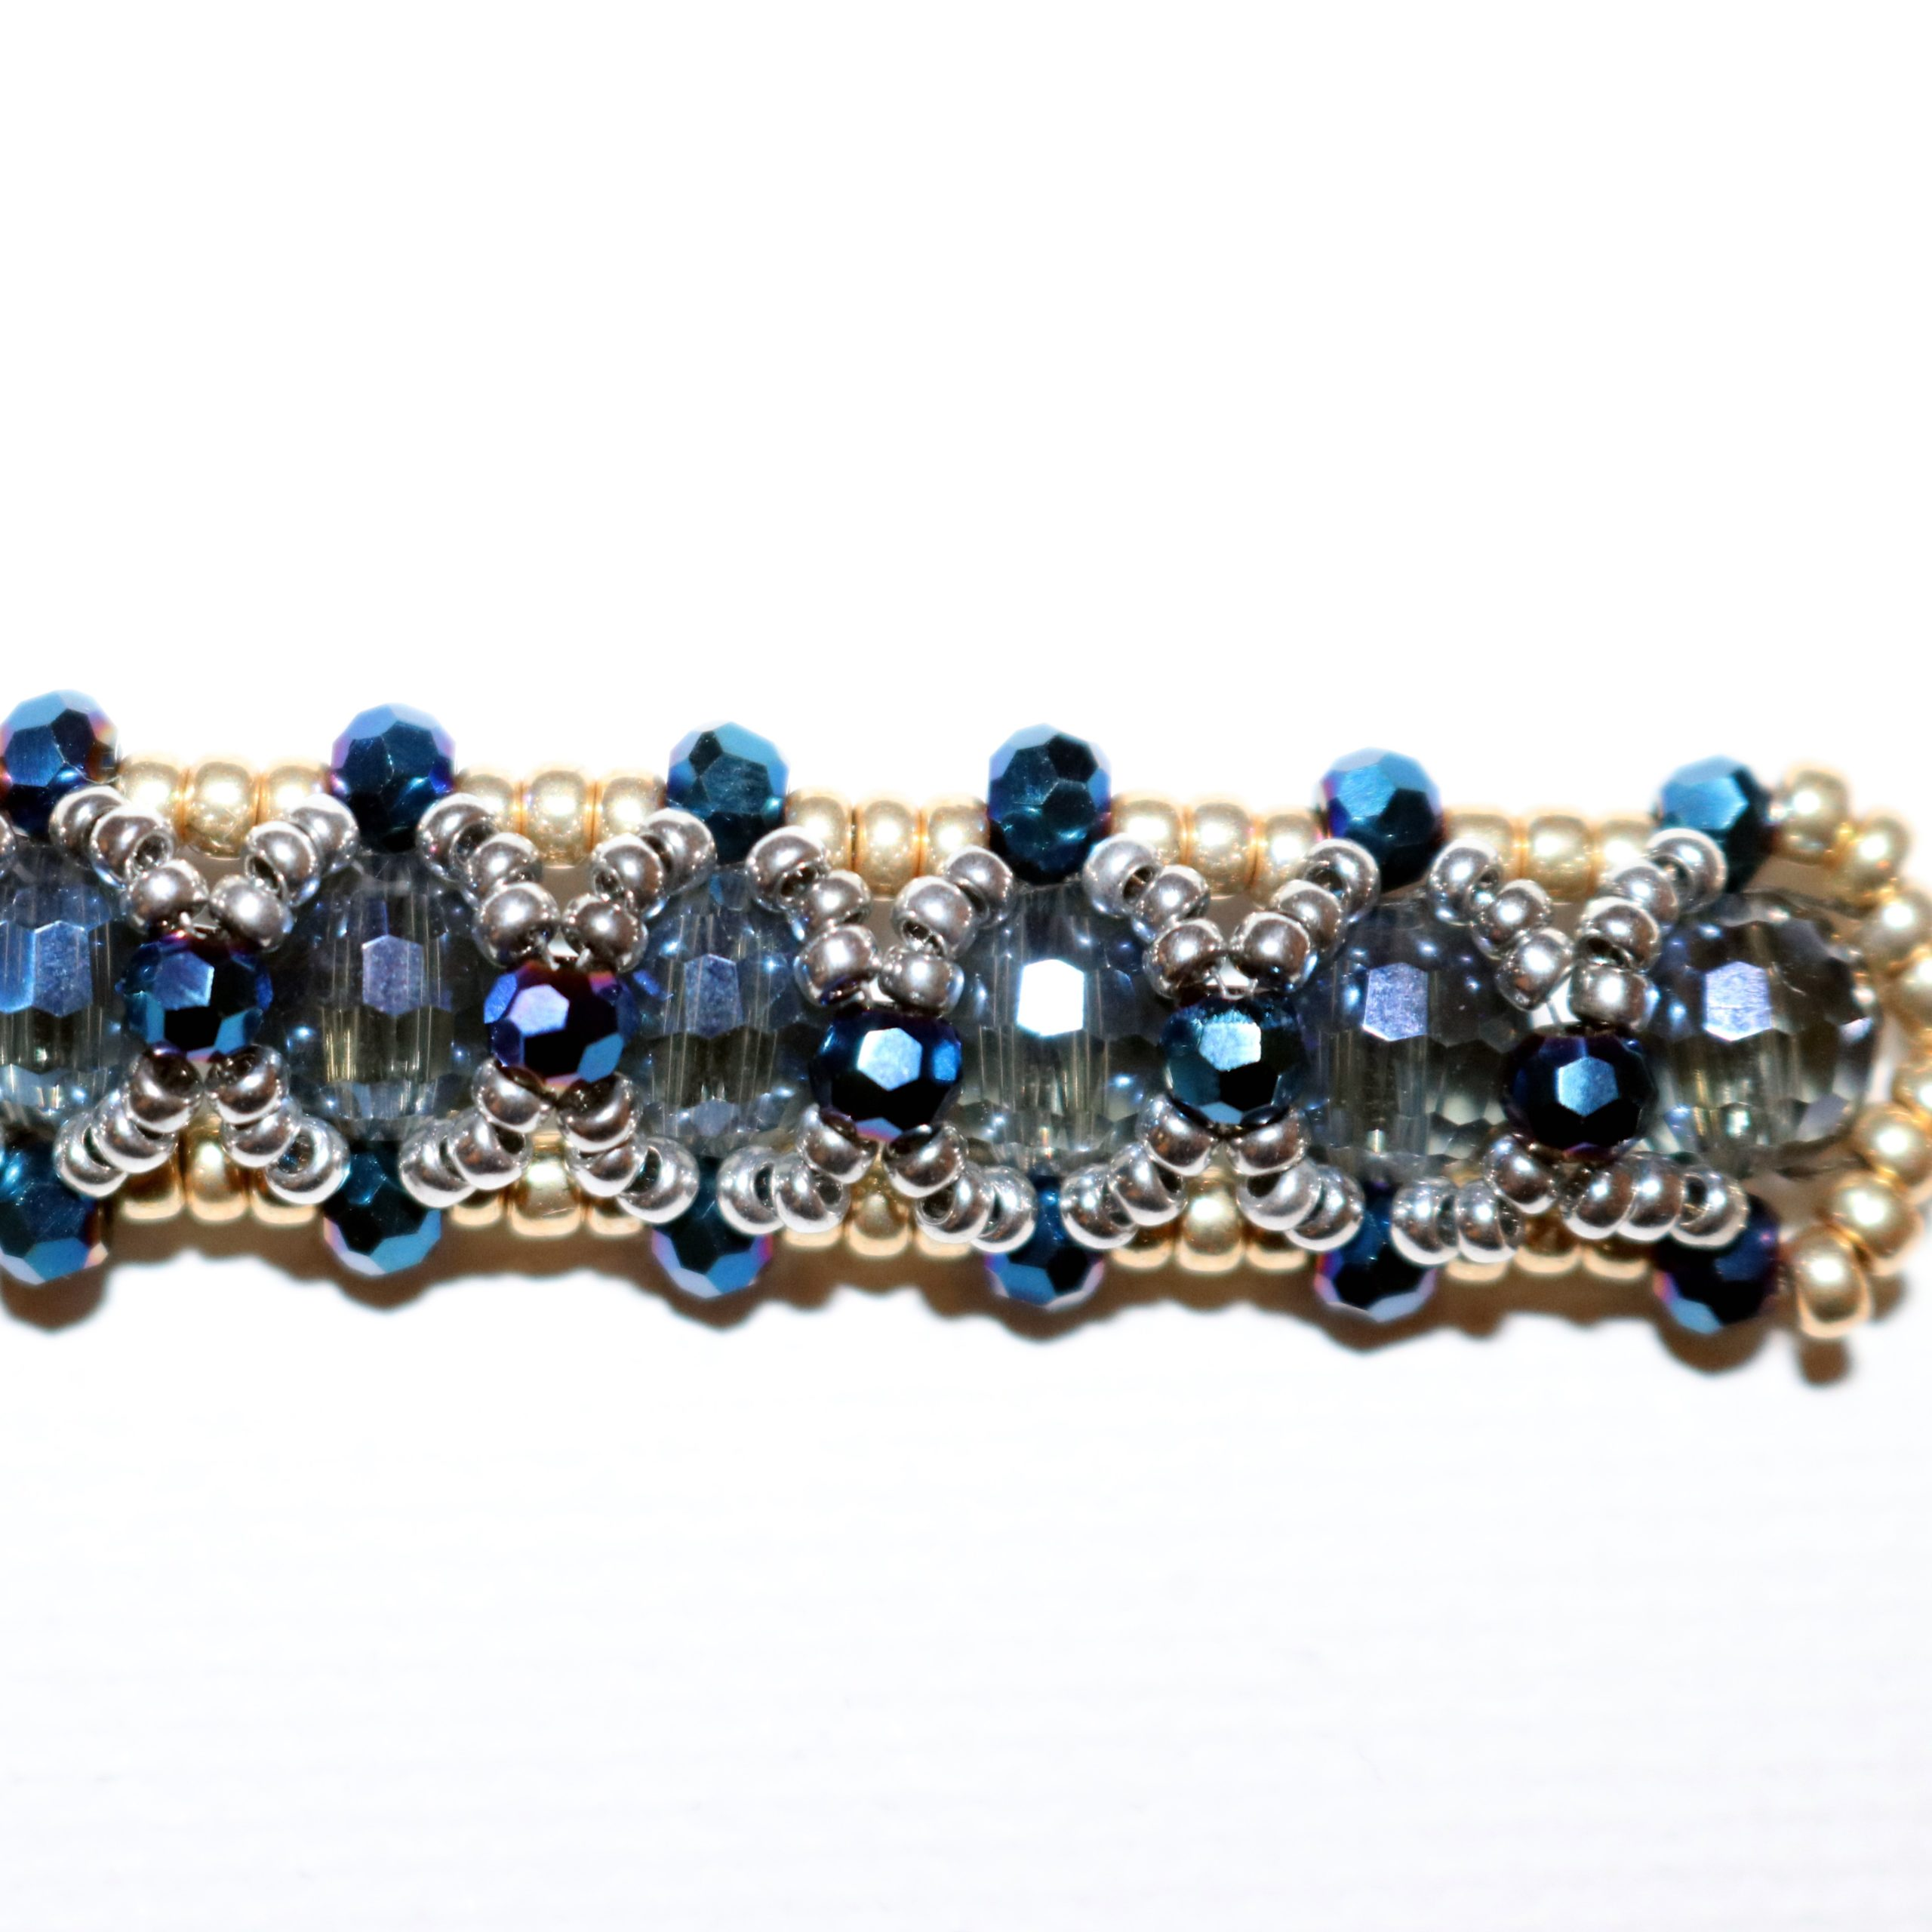 Looking Glass Bracelet showing clean thread finish